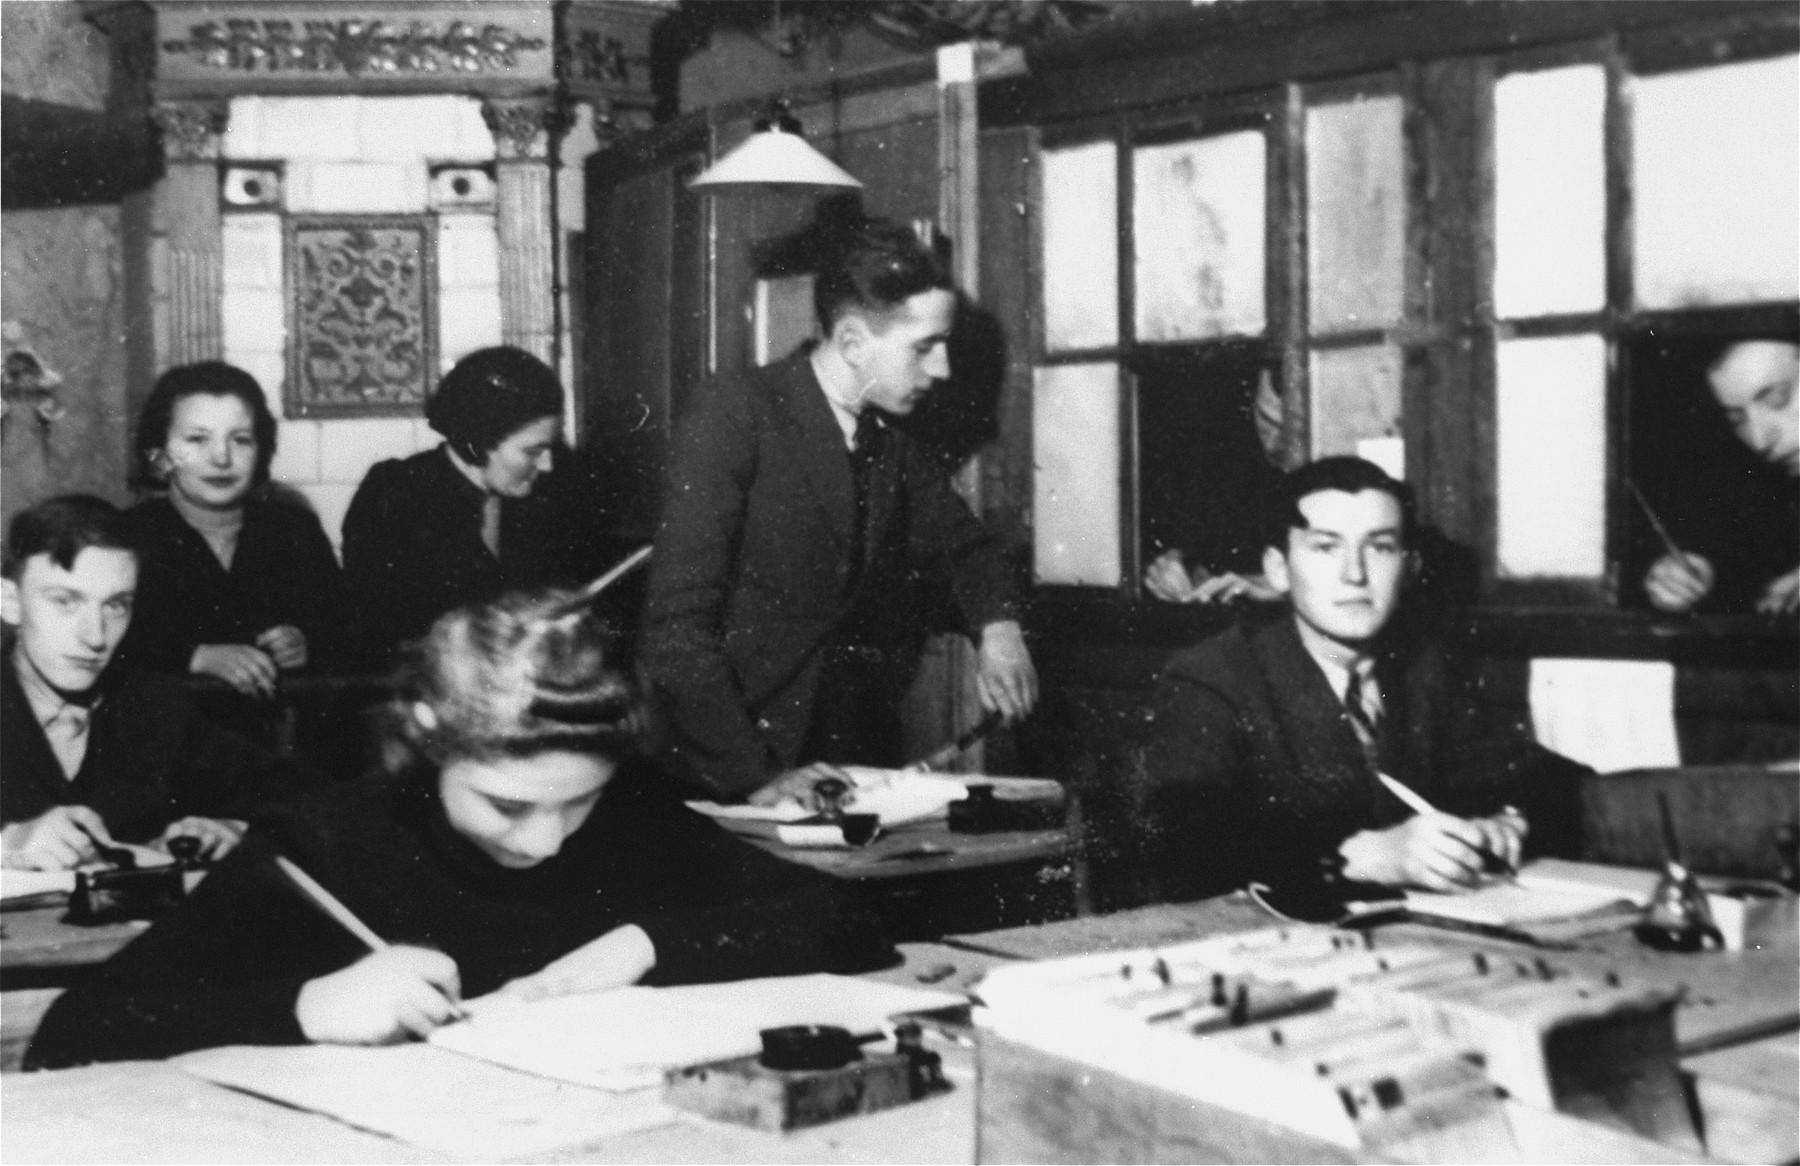 Members of the ghetto administration at work in the office of the Judenrat in the Kielce ghetto.  This photo was one the images included in an official album prepared by the Judenrat of the Kielce ghetto in 1942.